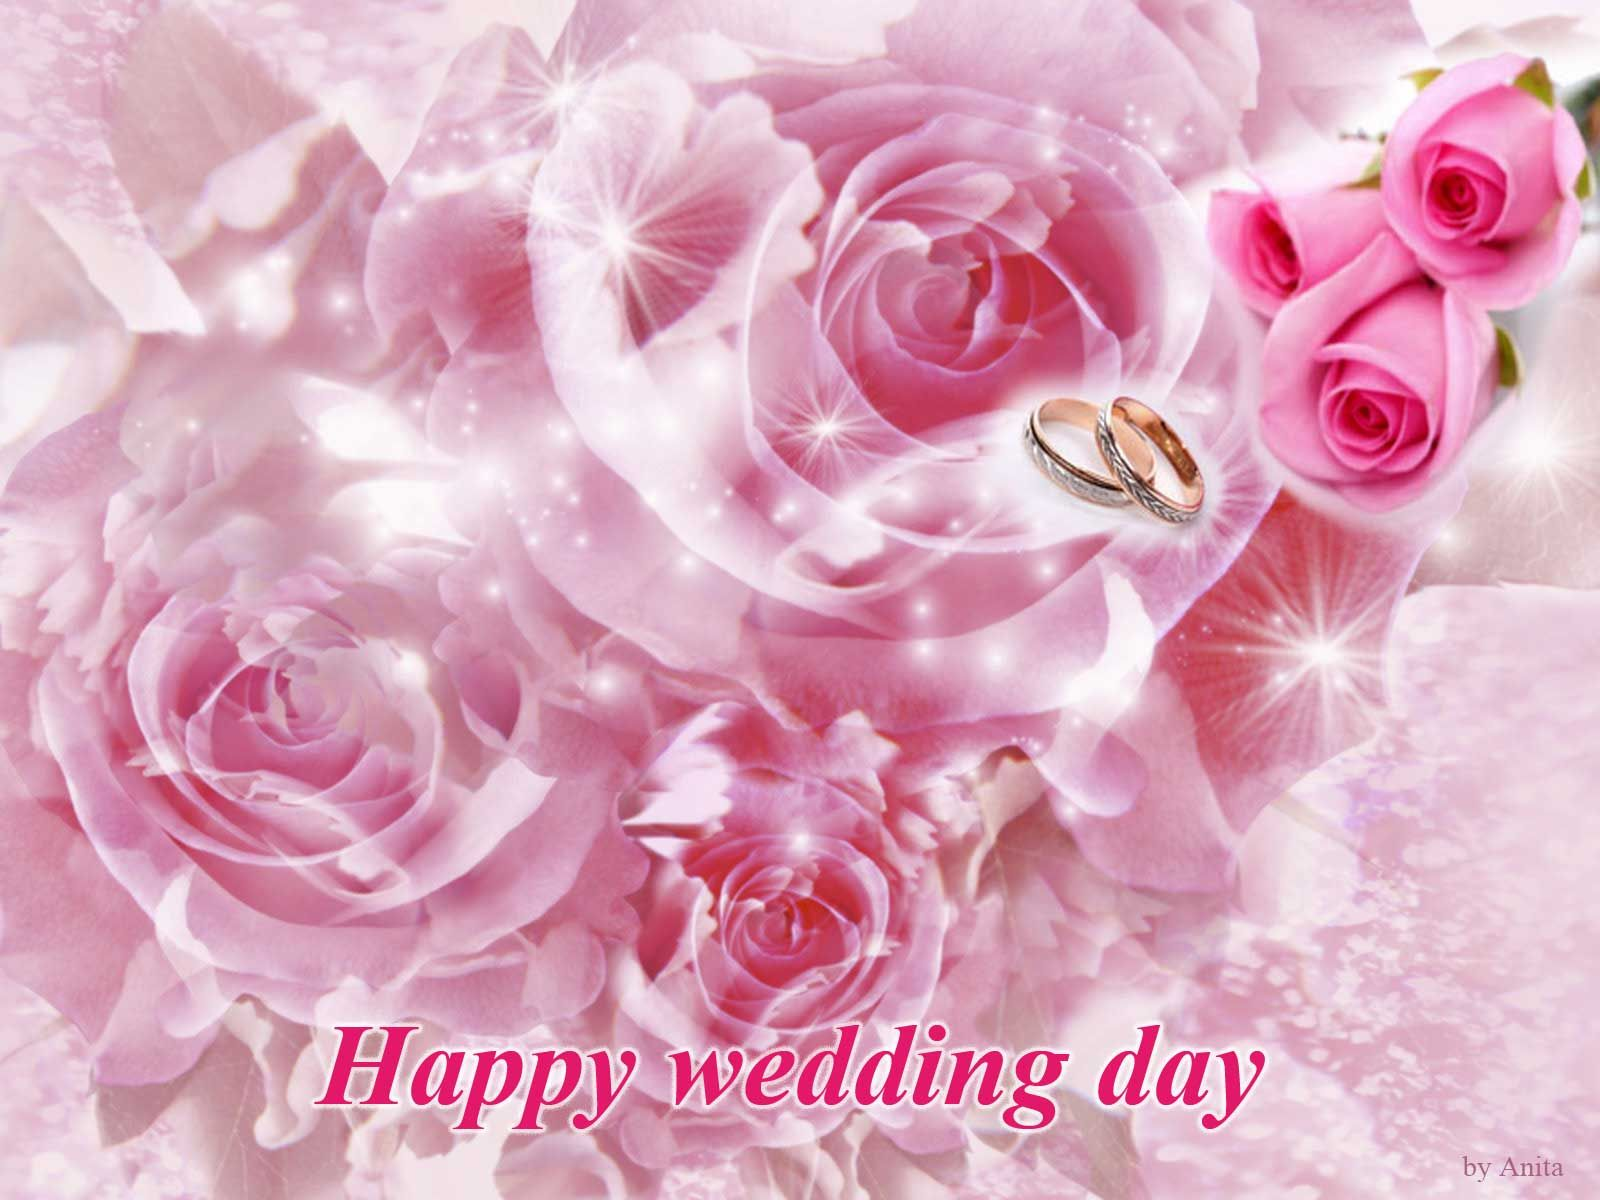 images+of+happy+wedding+day+with+doves Free Wallpapers